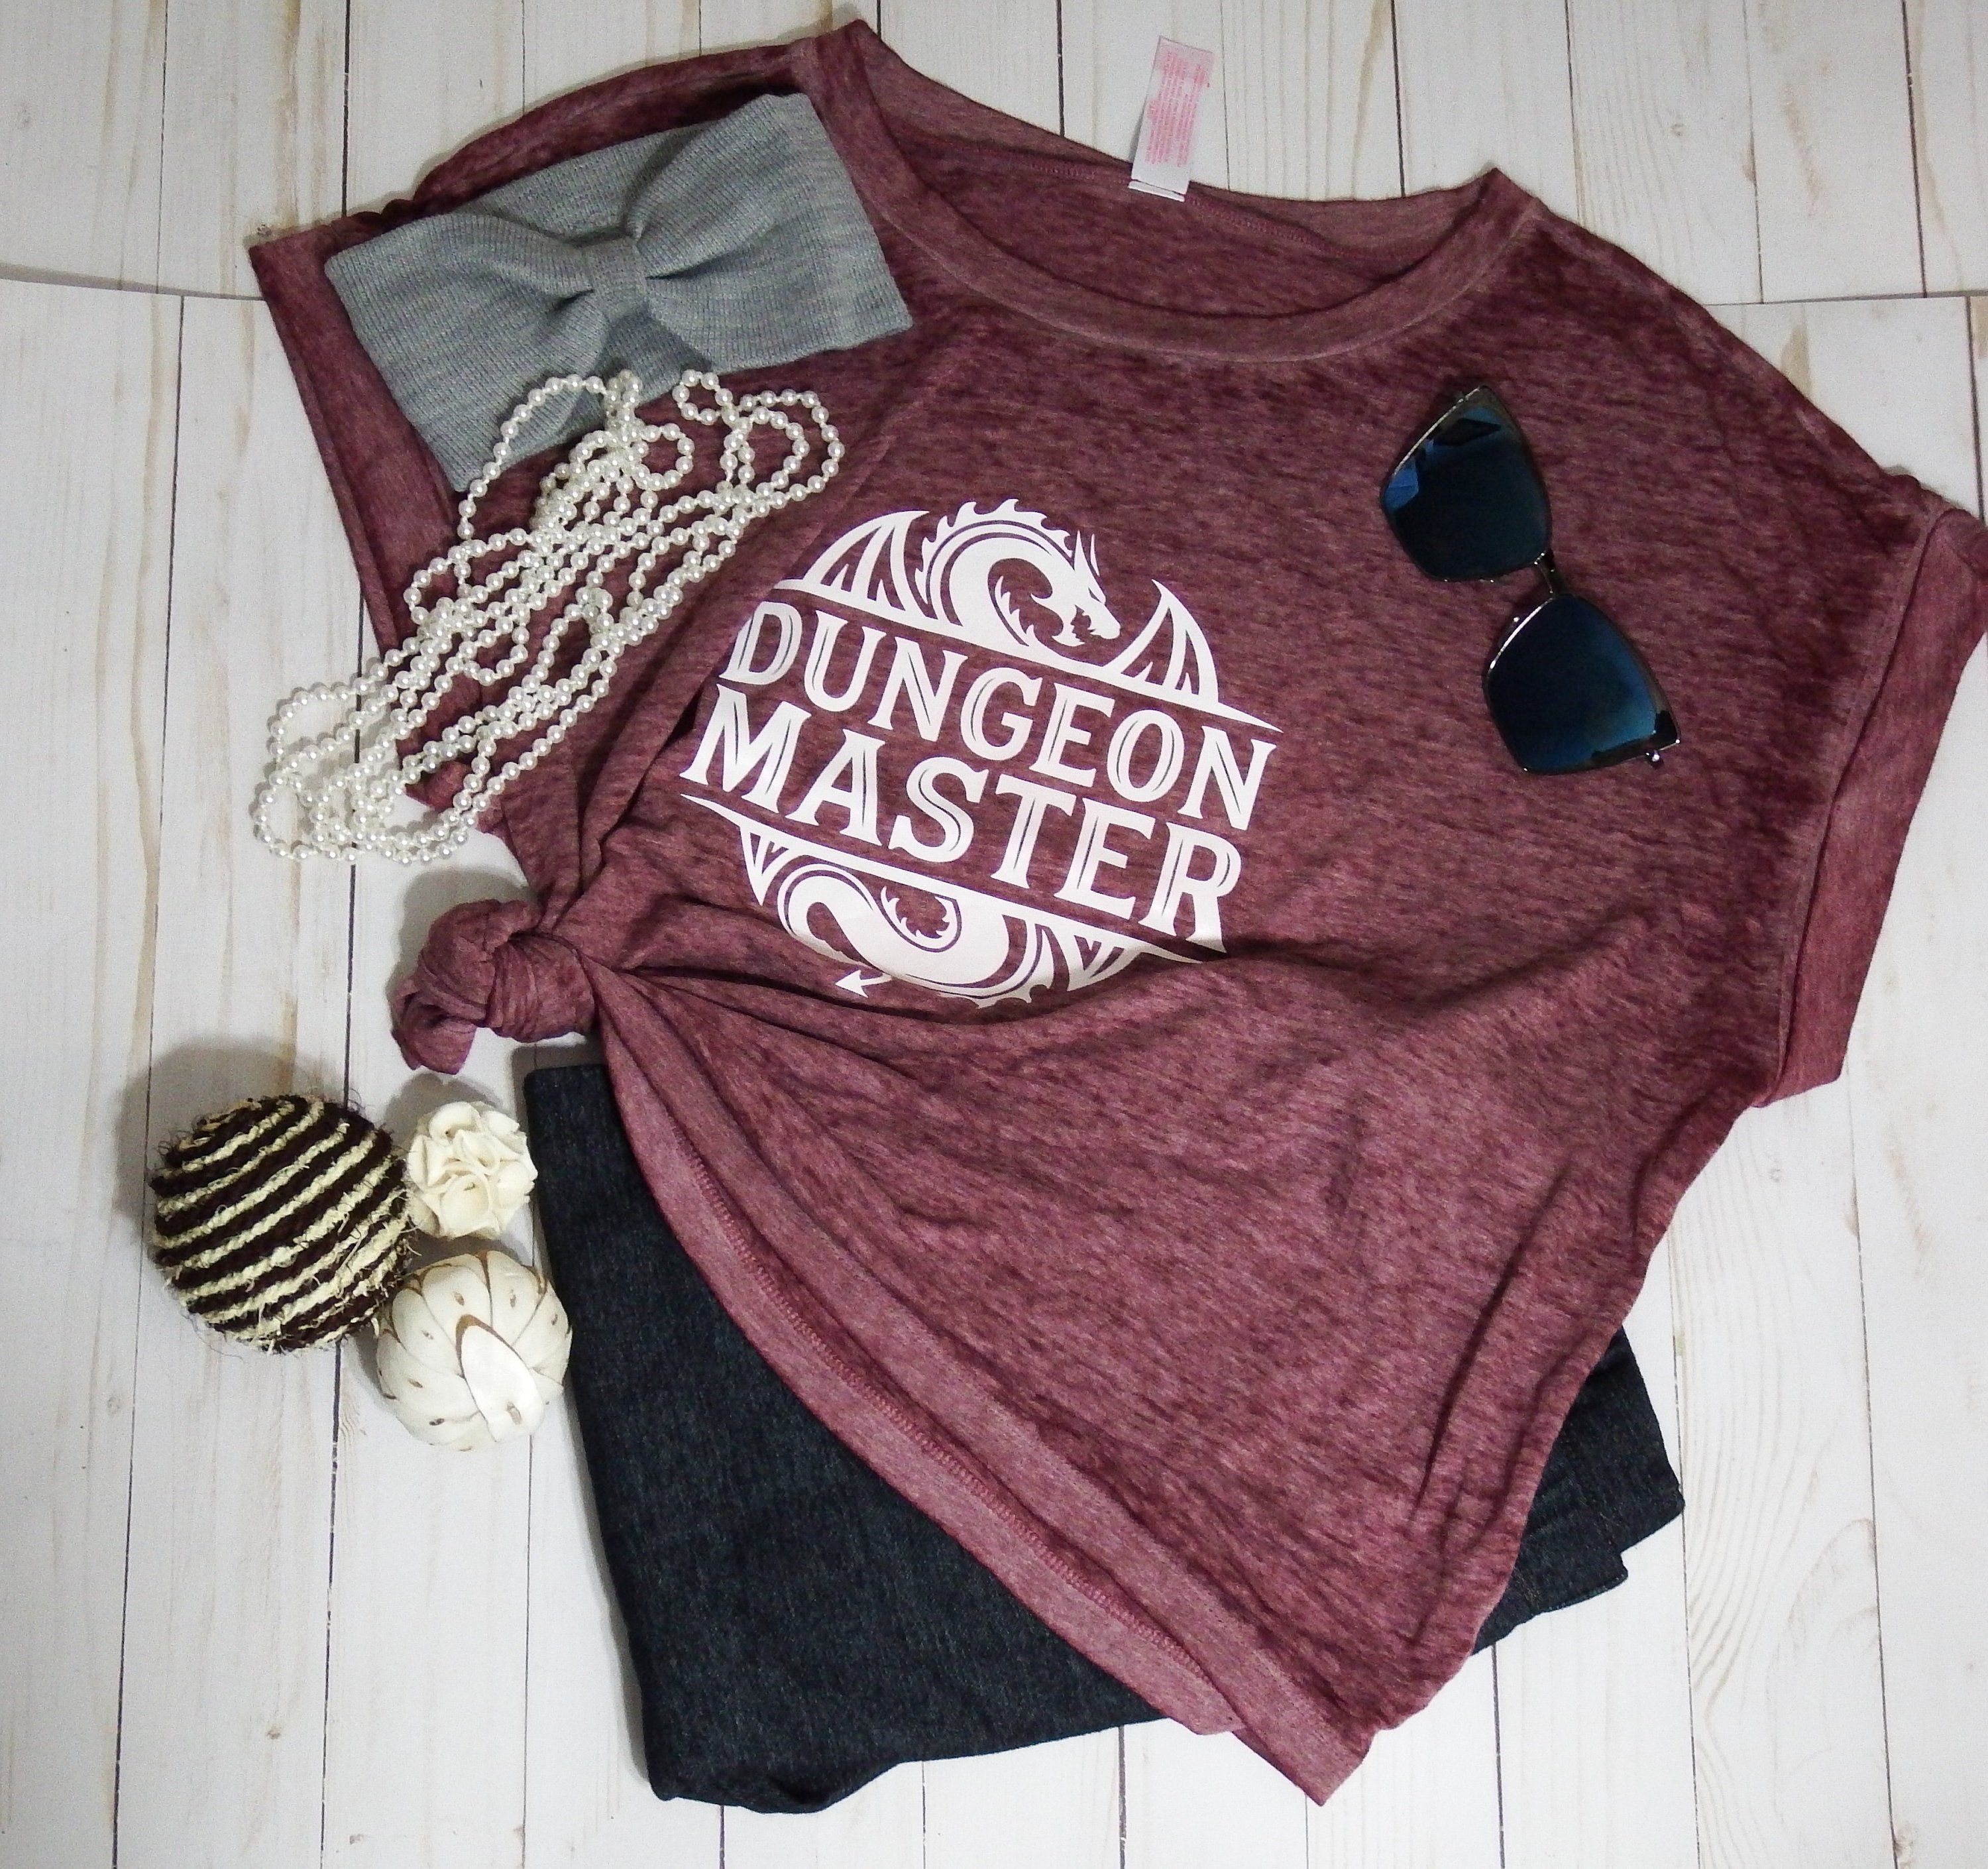 6ba951dc306a Women's Dungeon Maters D&D Dungeon and dragons T shirt size XL by  Simply2cutecreations on Etsy